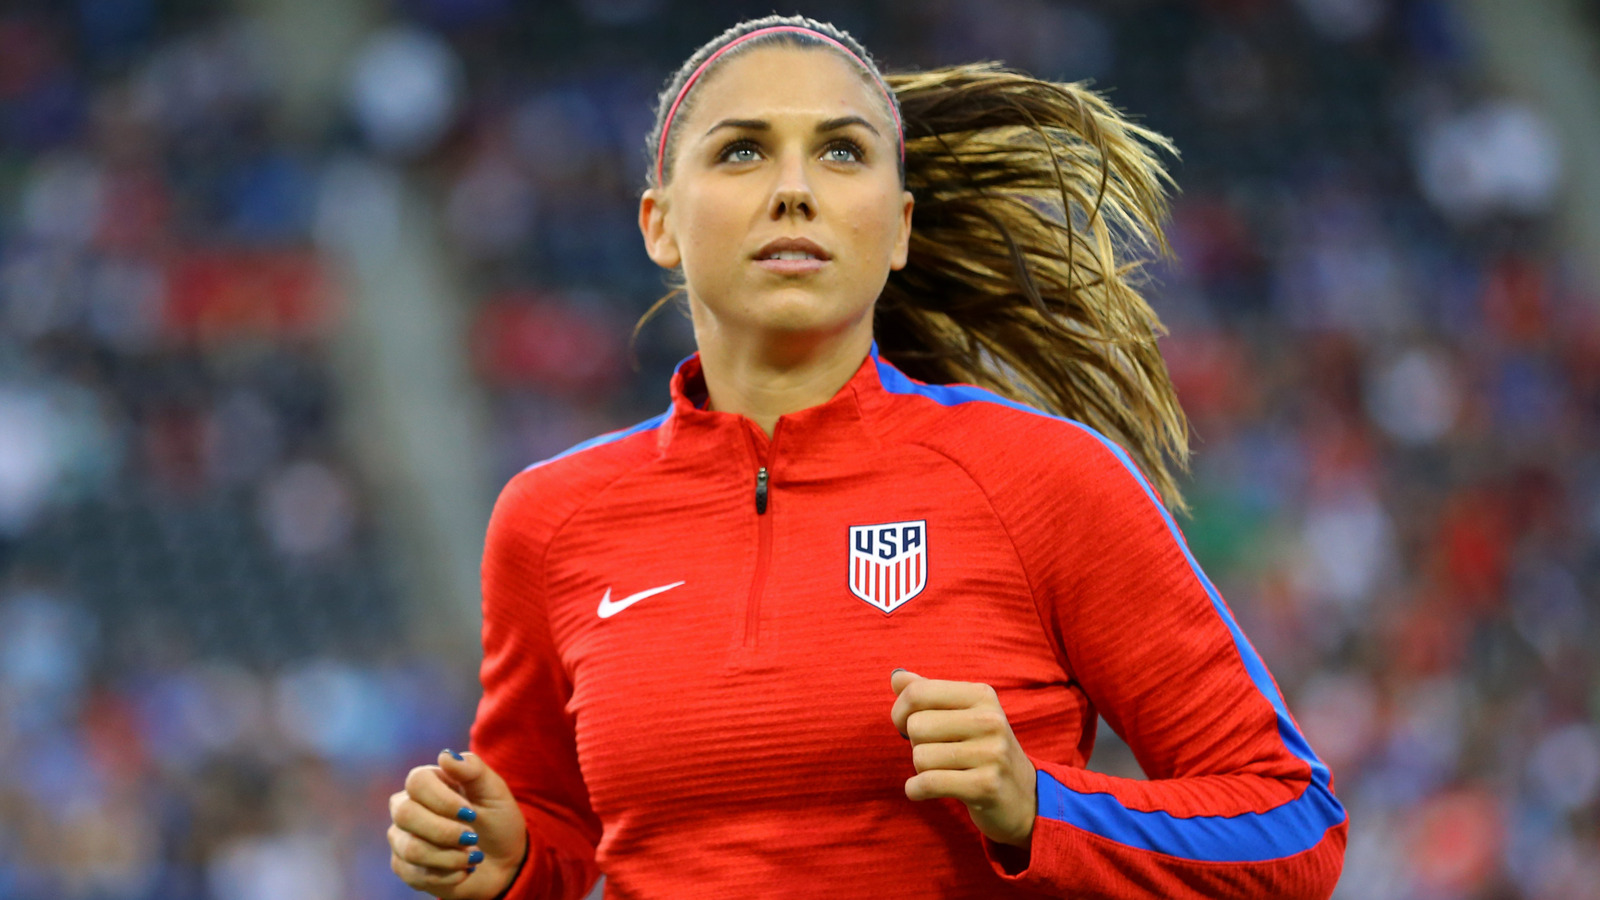 Alex Morgan Reportedly Cited For Trespassing At Disney